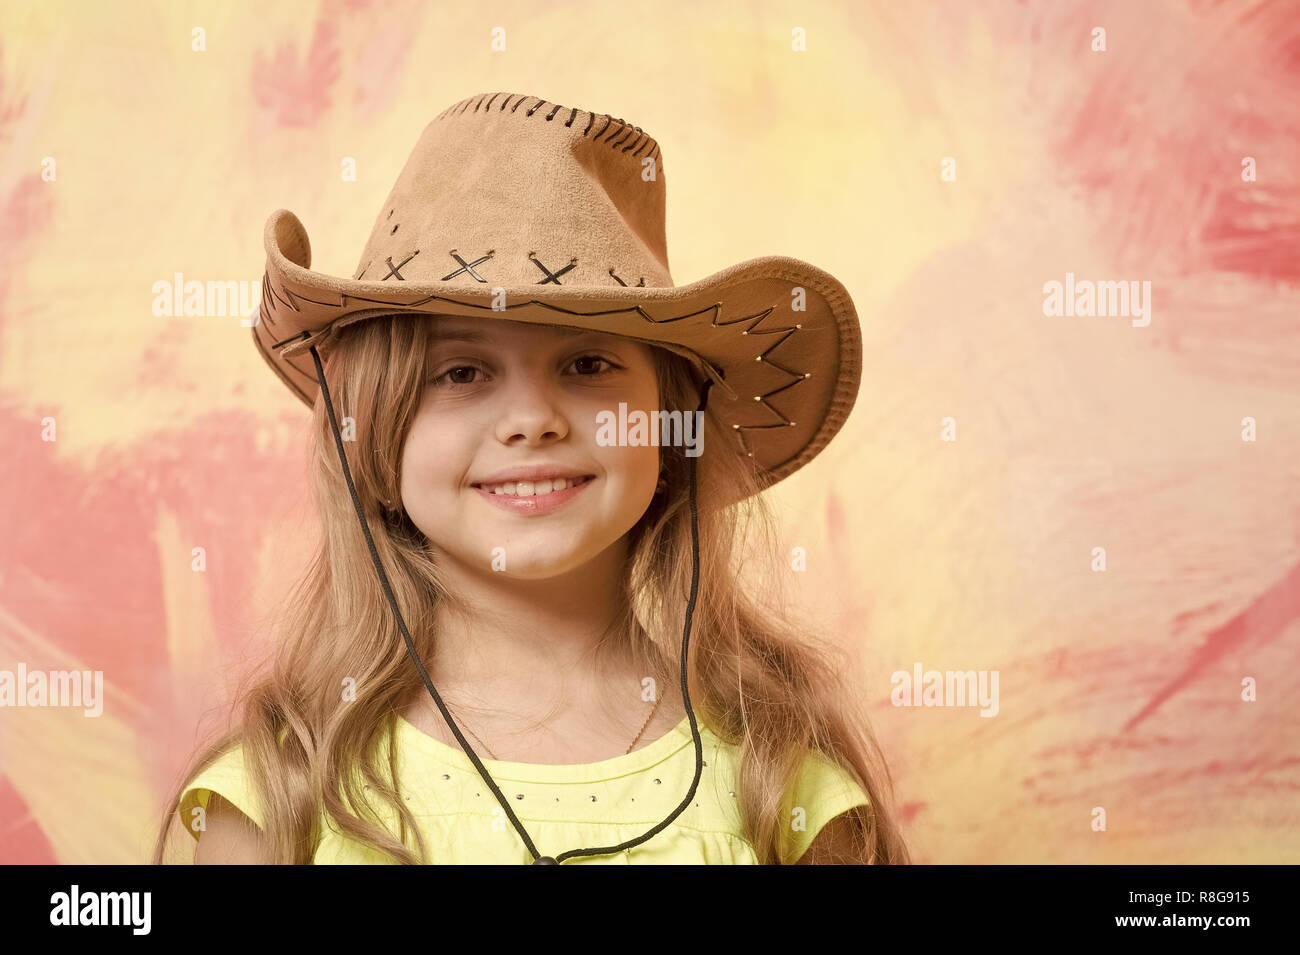 6206e2fafa545 cowgirl. little girl in cowboy hat on colorful background